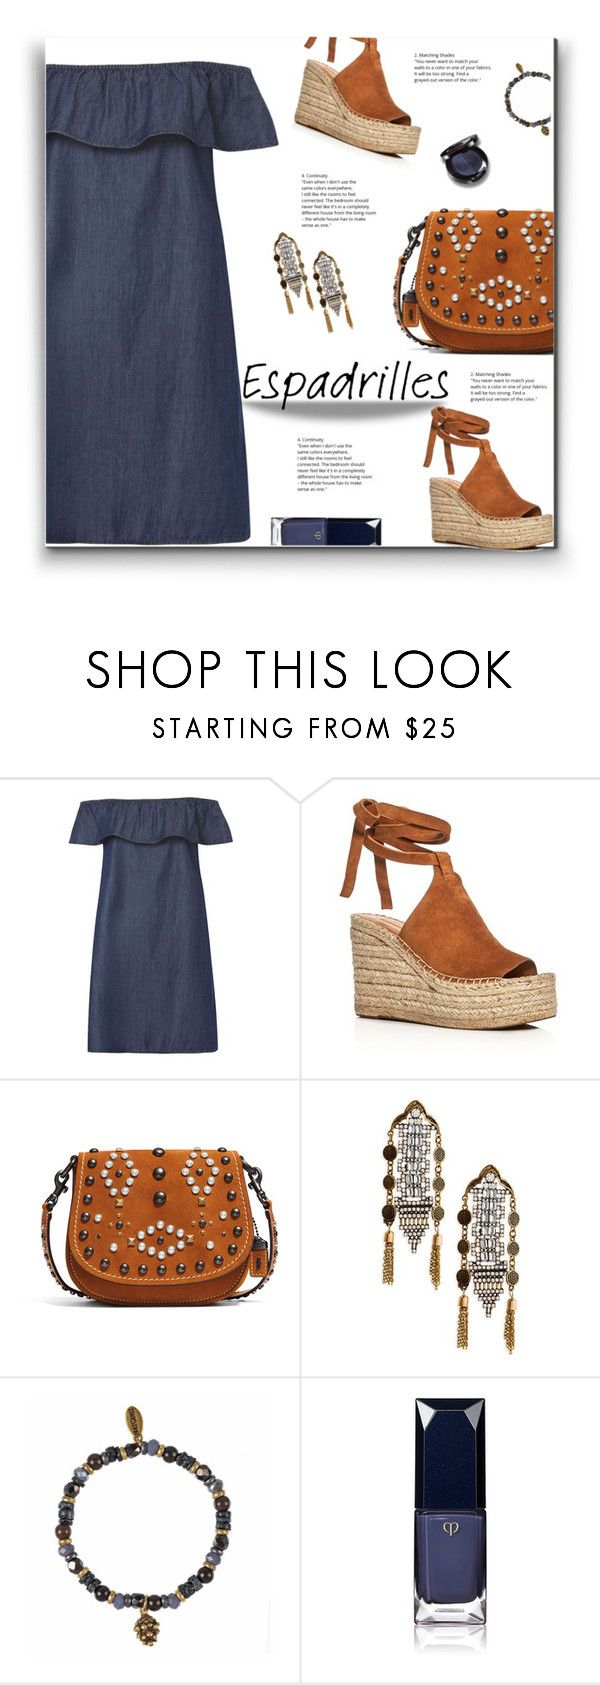 """Step Into Summer"" by yummymummystyle ❤ liked on Polyvore featuring Dorothy Perkins, Sigerson Morrison, Coach 1941, Shashi, Hultquist, Clé de Peau Beauté, Christina Choi Cosmetics, chambray, MyStyle and espadrilles"